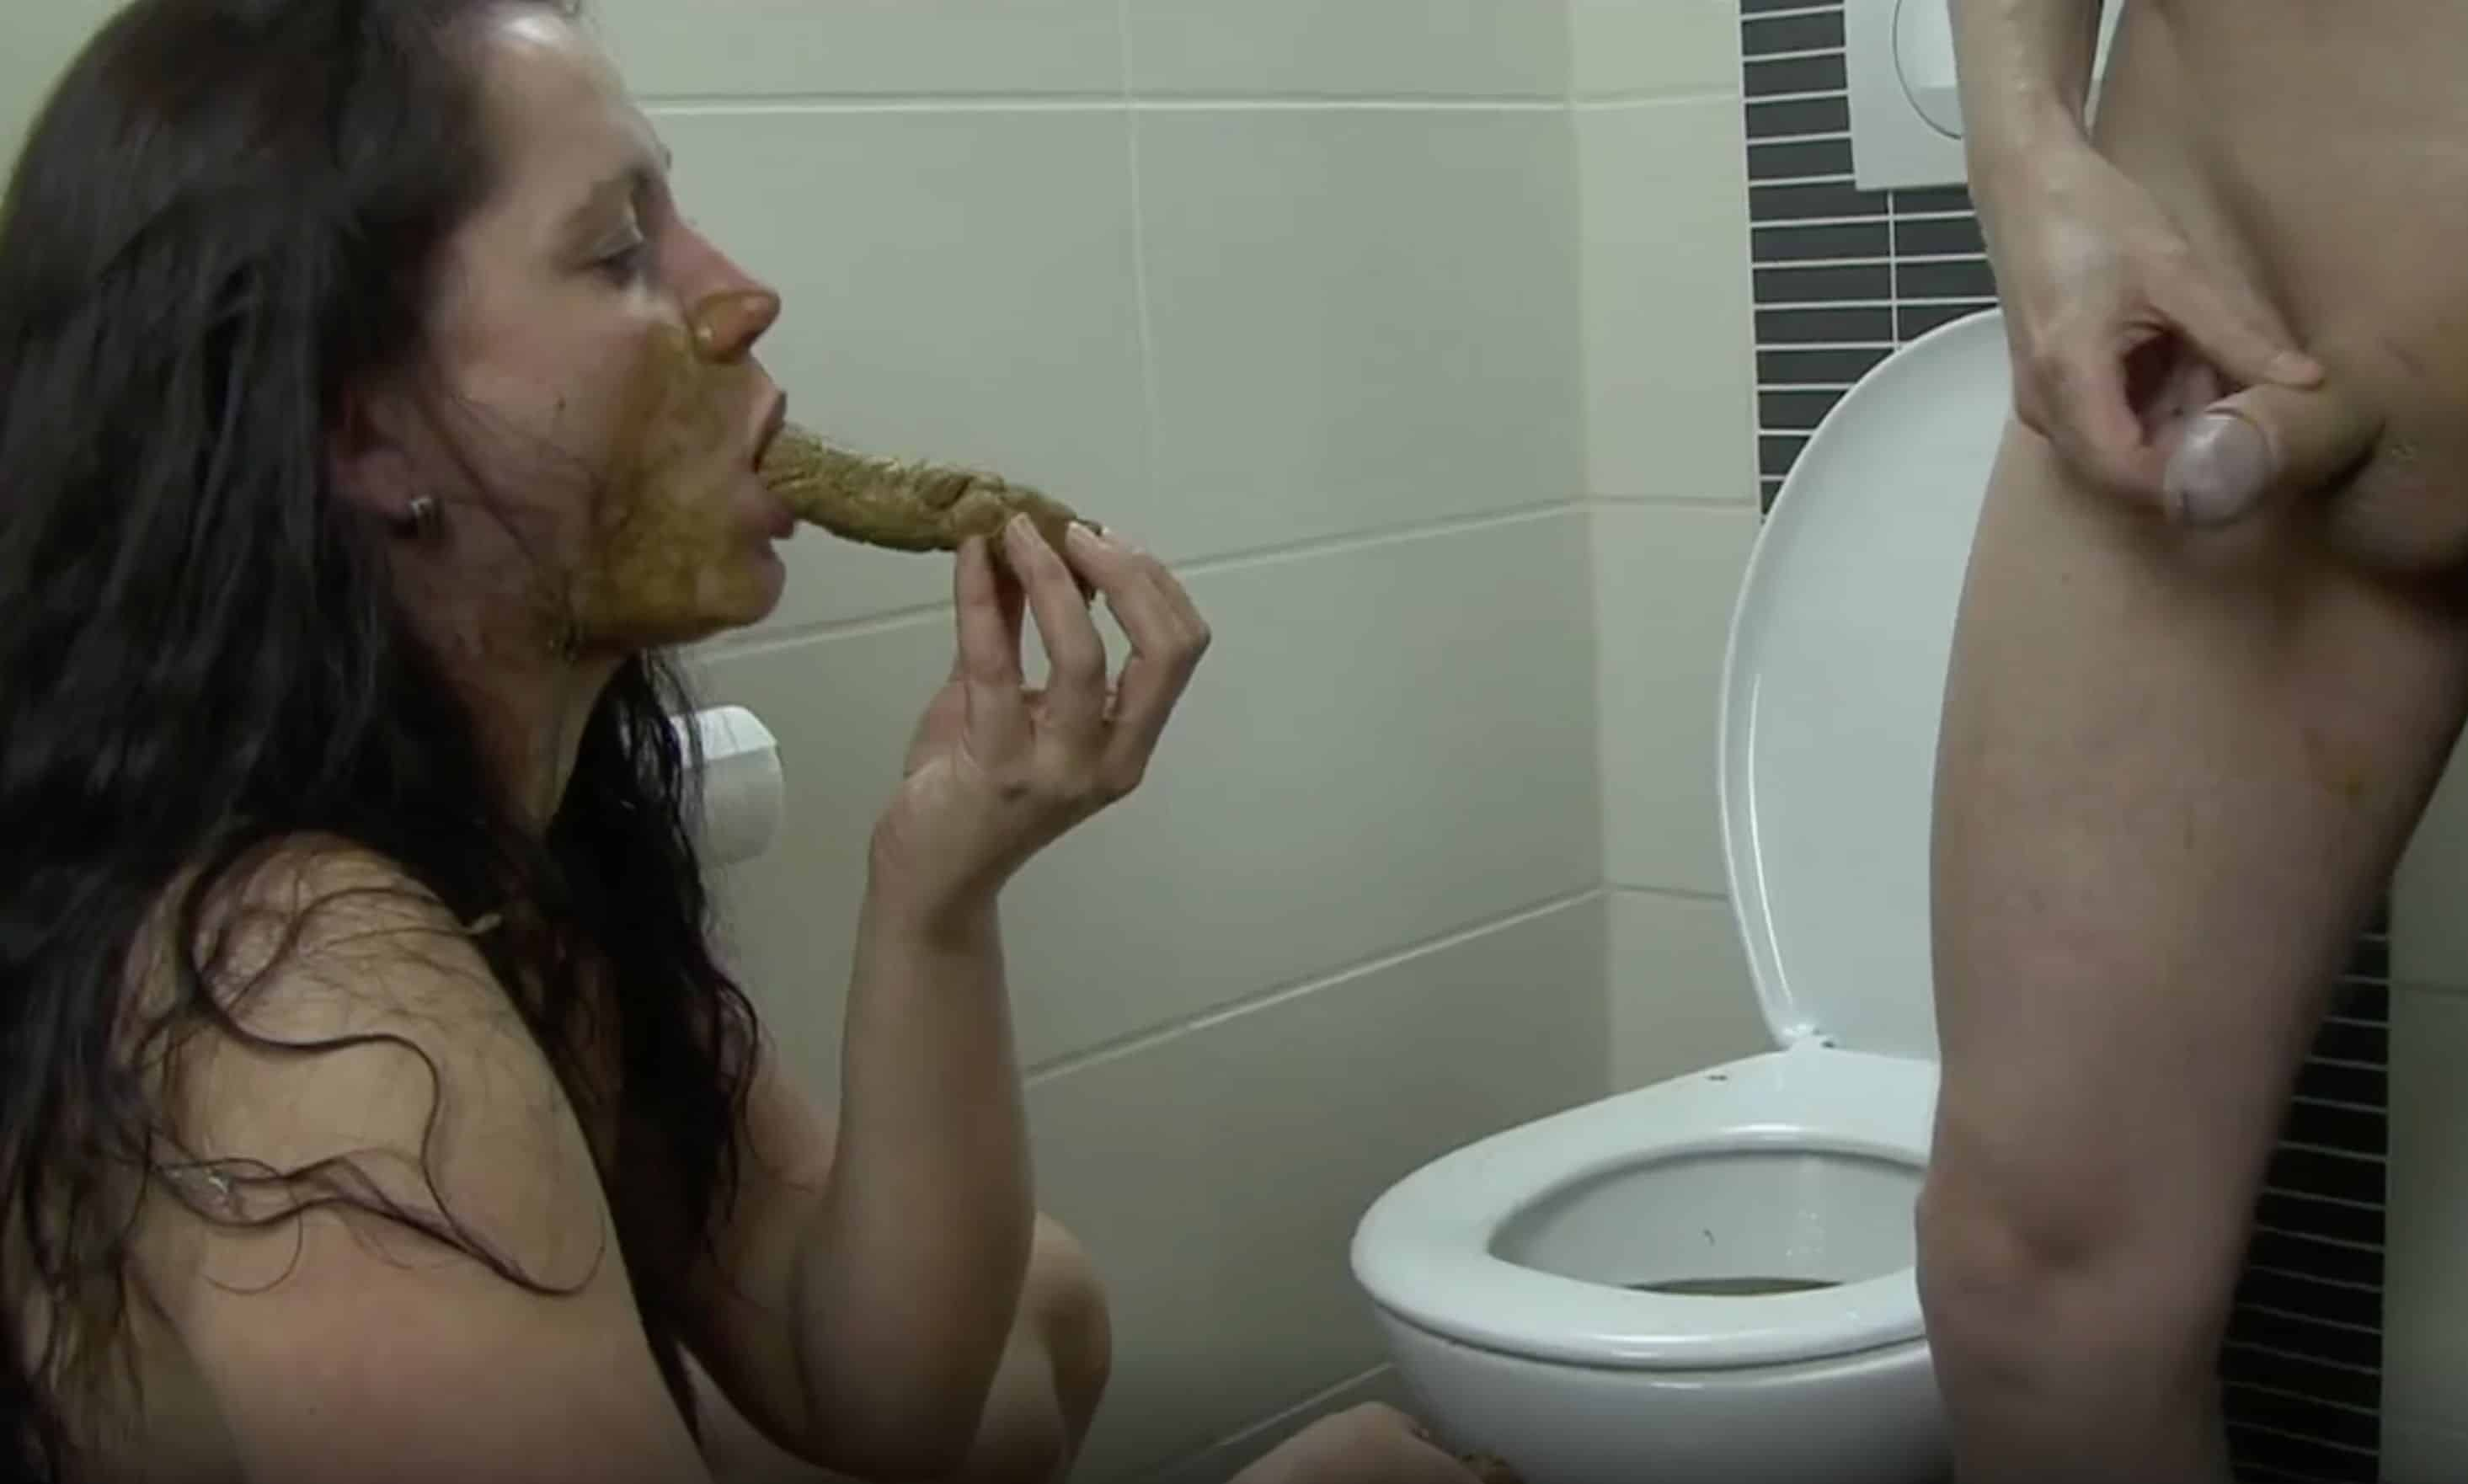 Human toilet hired to serve filthy scat people xxx porn movie ...